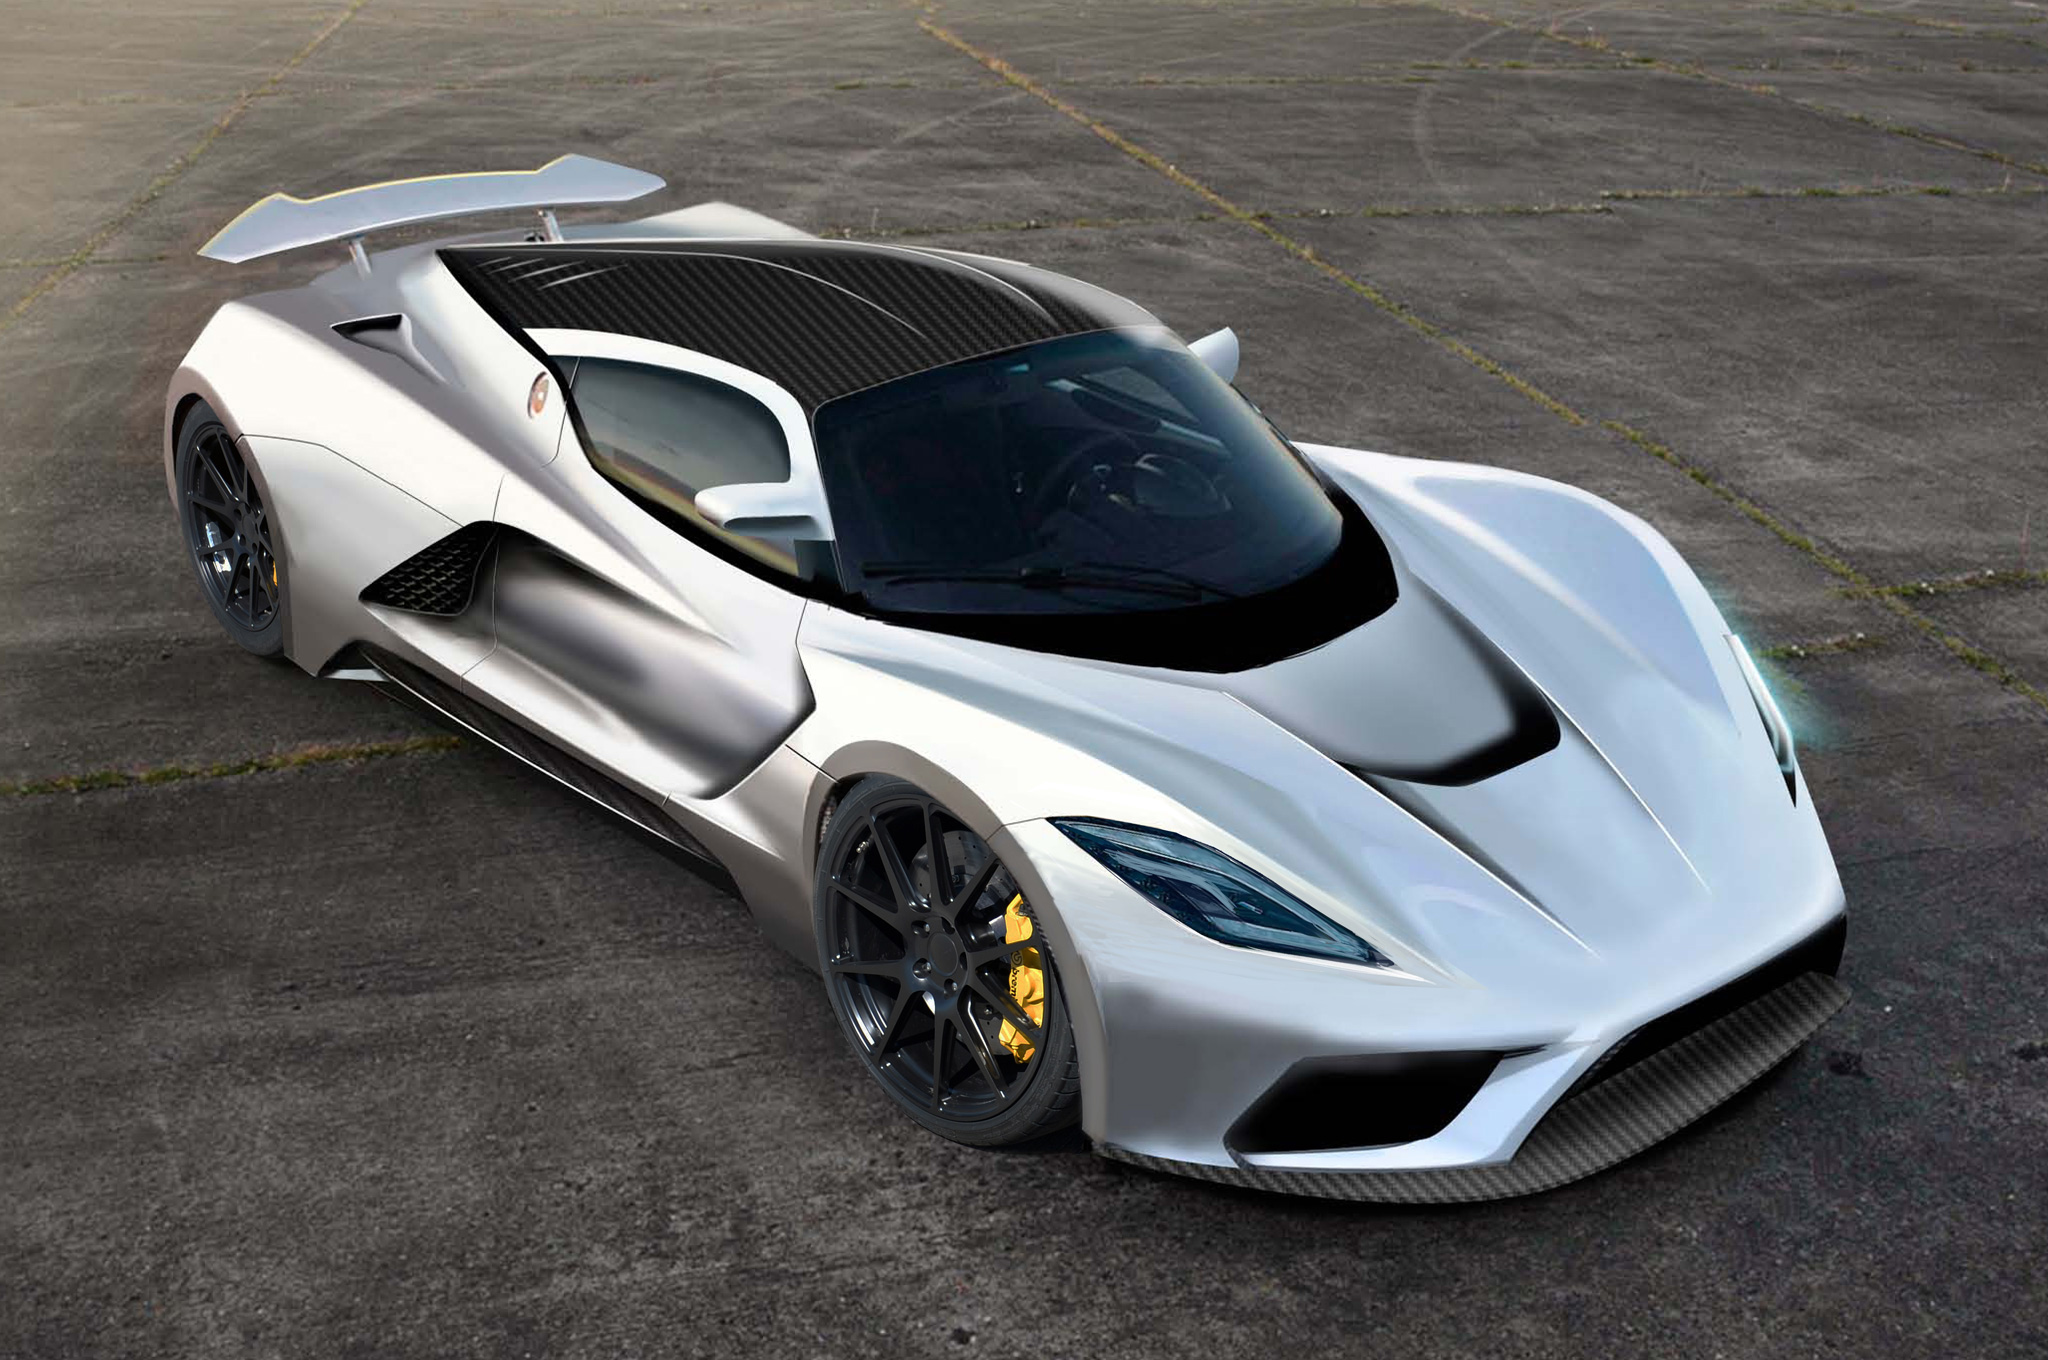 Hennessey Venom F5 Aims to Hit 290 MPH, Arrives in 2016